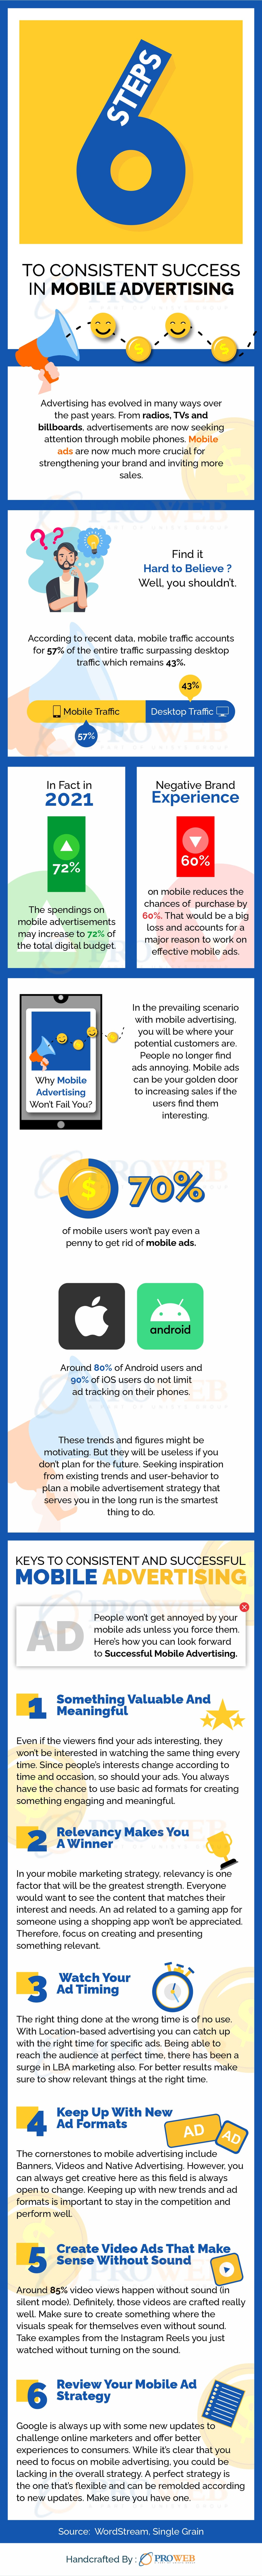 6 Steps To Consistent Success In Mobile Advertising